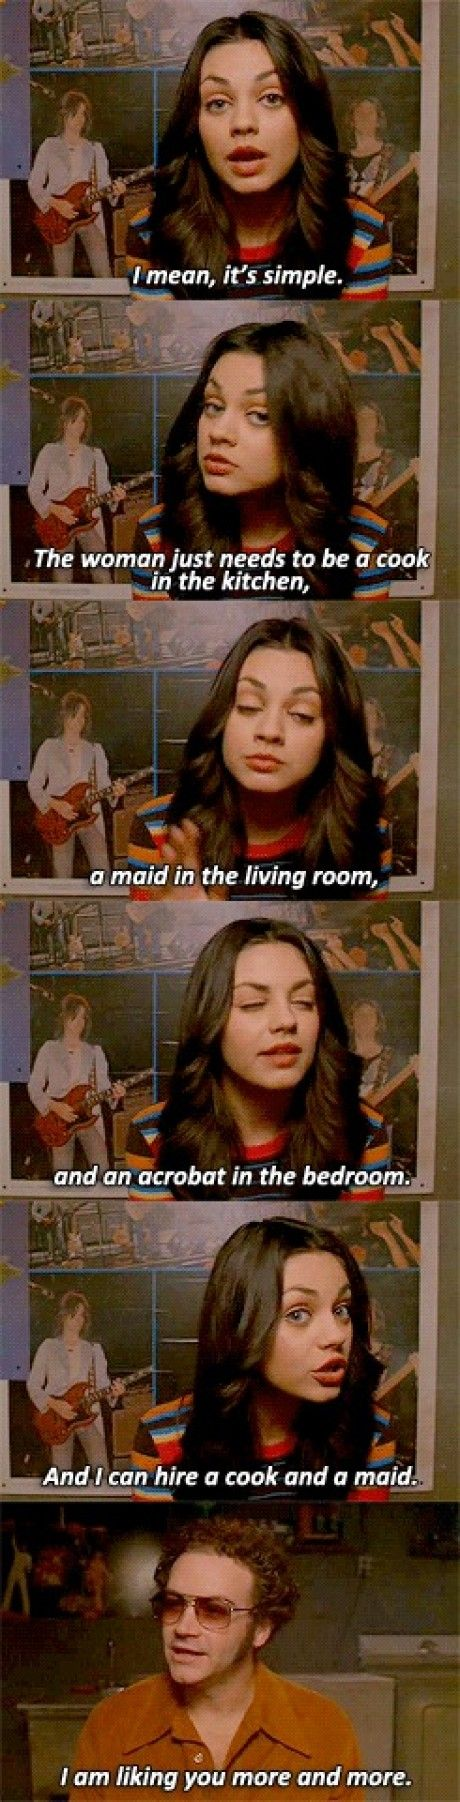 That 70's show had some pretty great moments. This is ABSOLUTELY my favorite t.v show!!!!